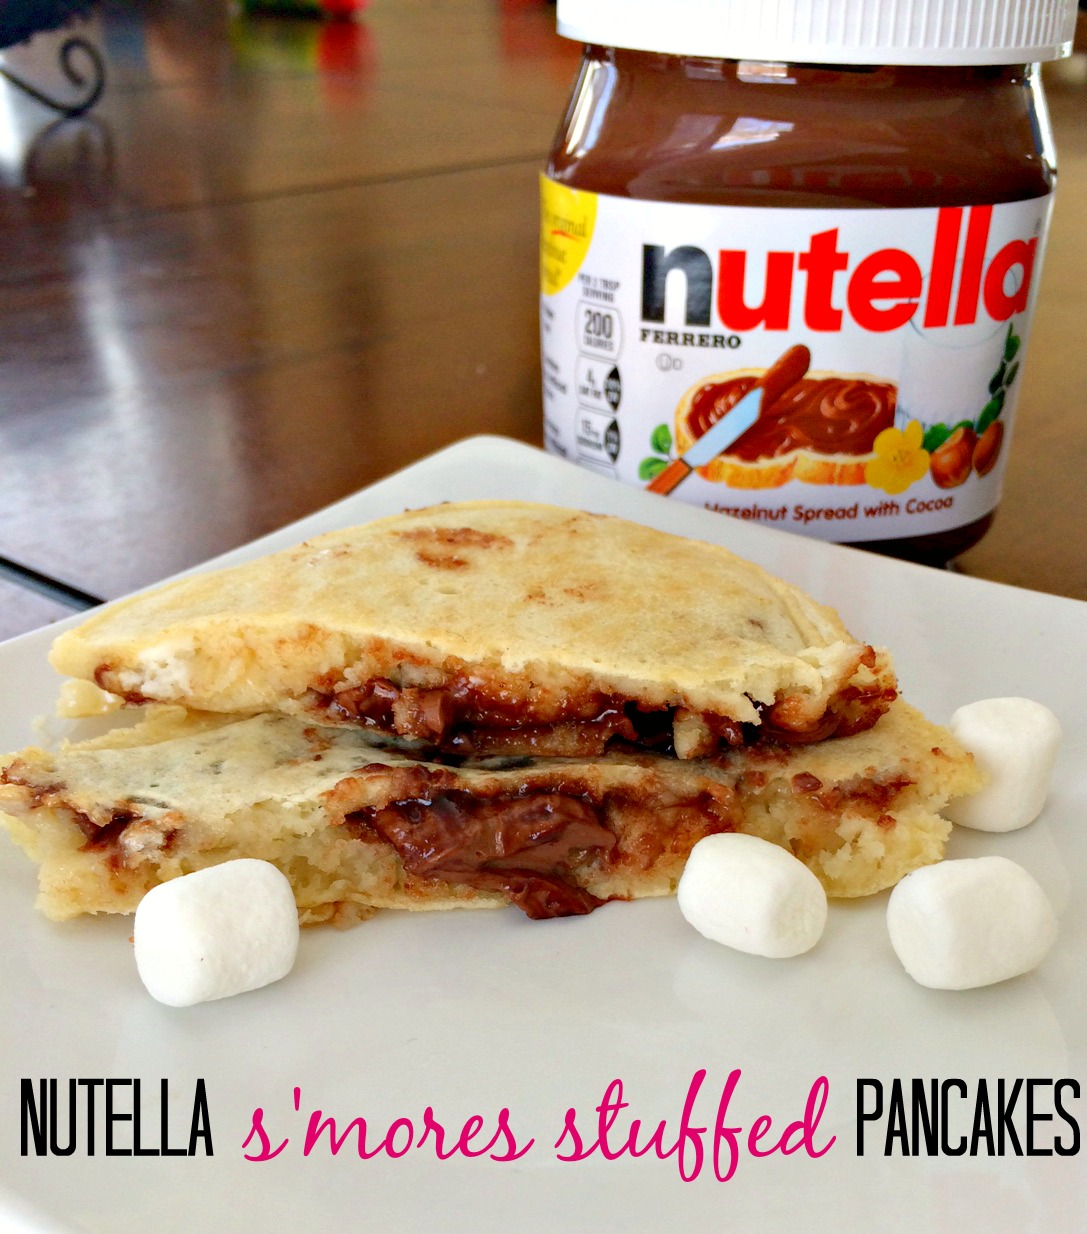 Nutella Stuffed Pancakes & Nutella S'mores Stuffed Pancakes | Finding...